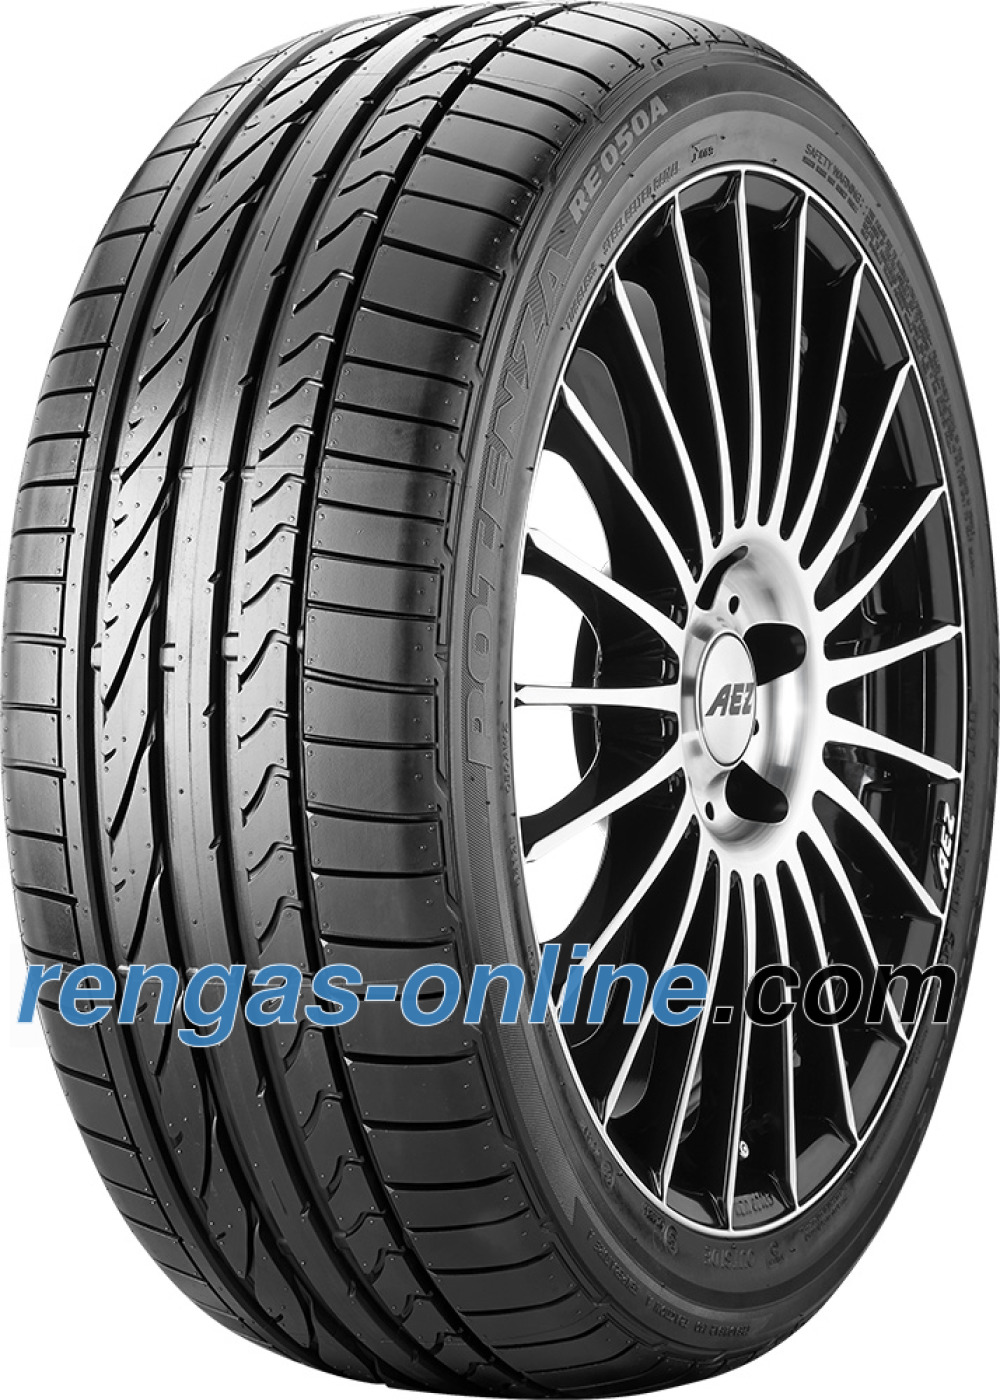 bridgestone-potenza-re-050-a-23545-zr18-94y-am8-vannesuojalla-mfs